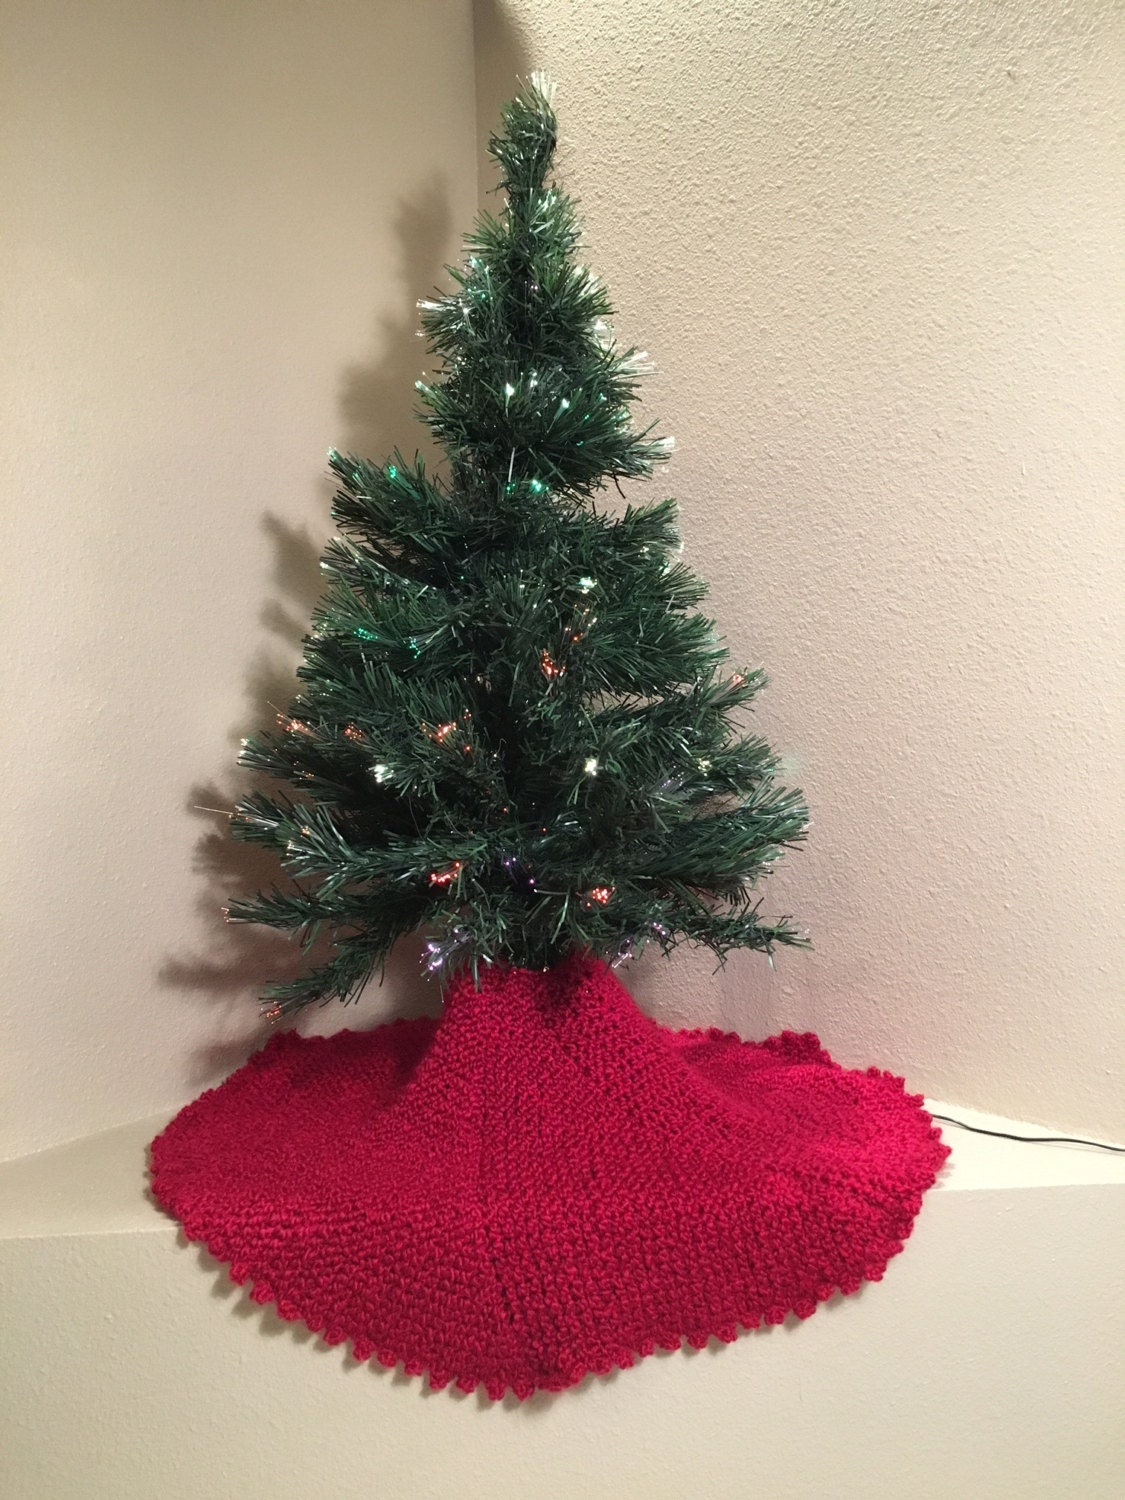 Christmas Tree Skirt - a loom knit pattern